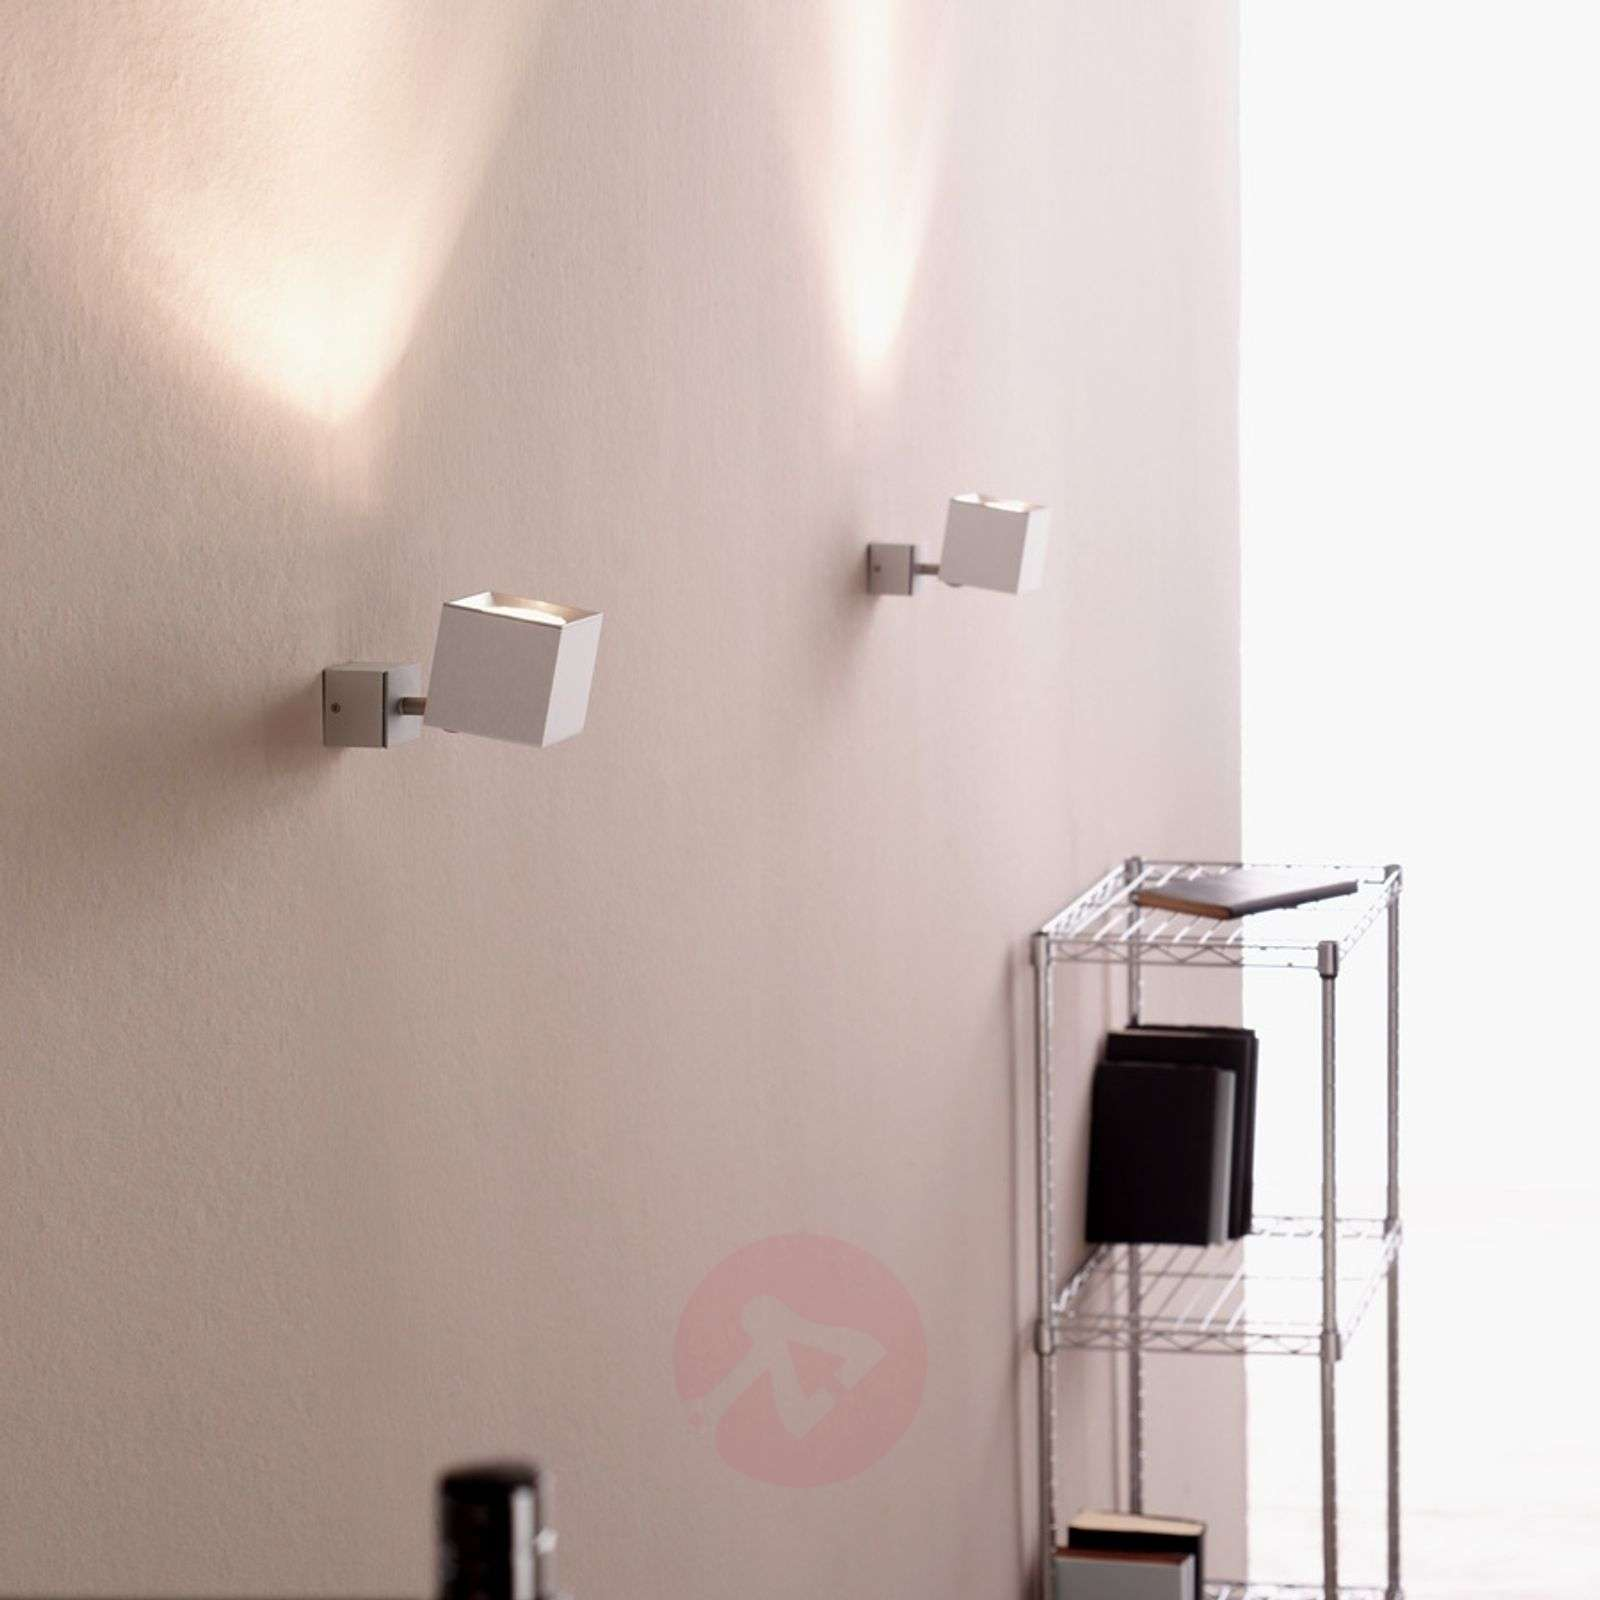 Dau wall light with flexible spotlight lights dau wall light with flexible spotlight 6708079 02 mozeypictures Image collections